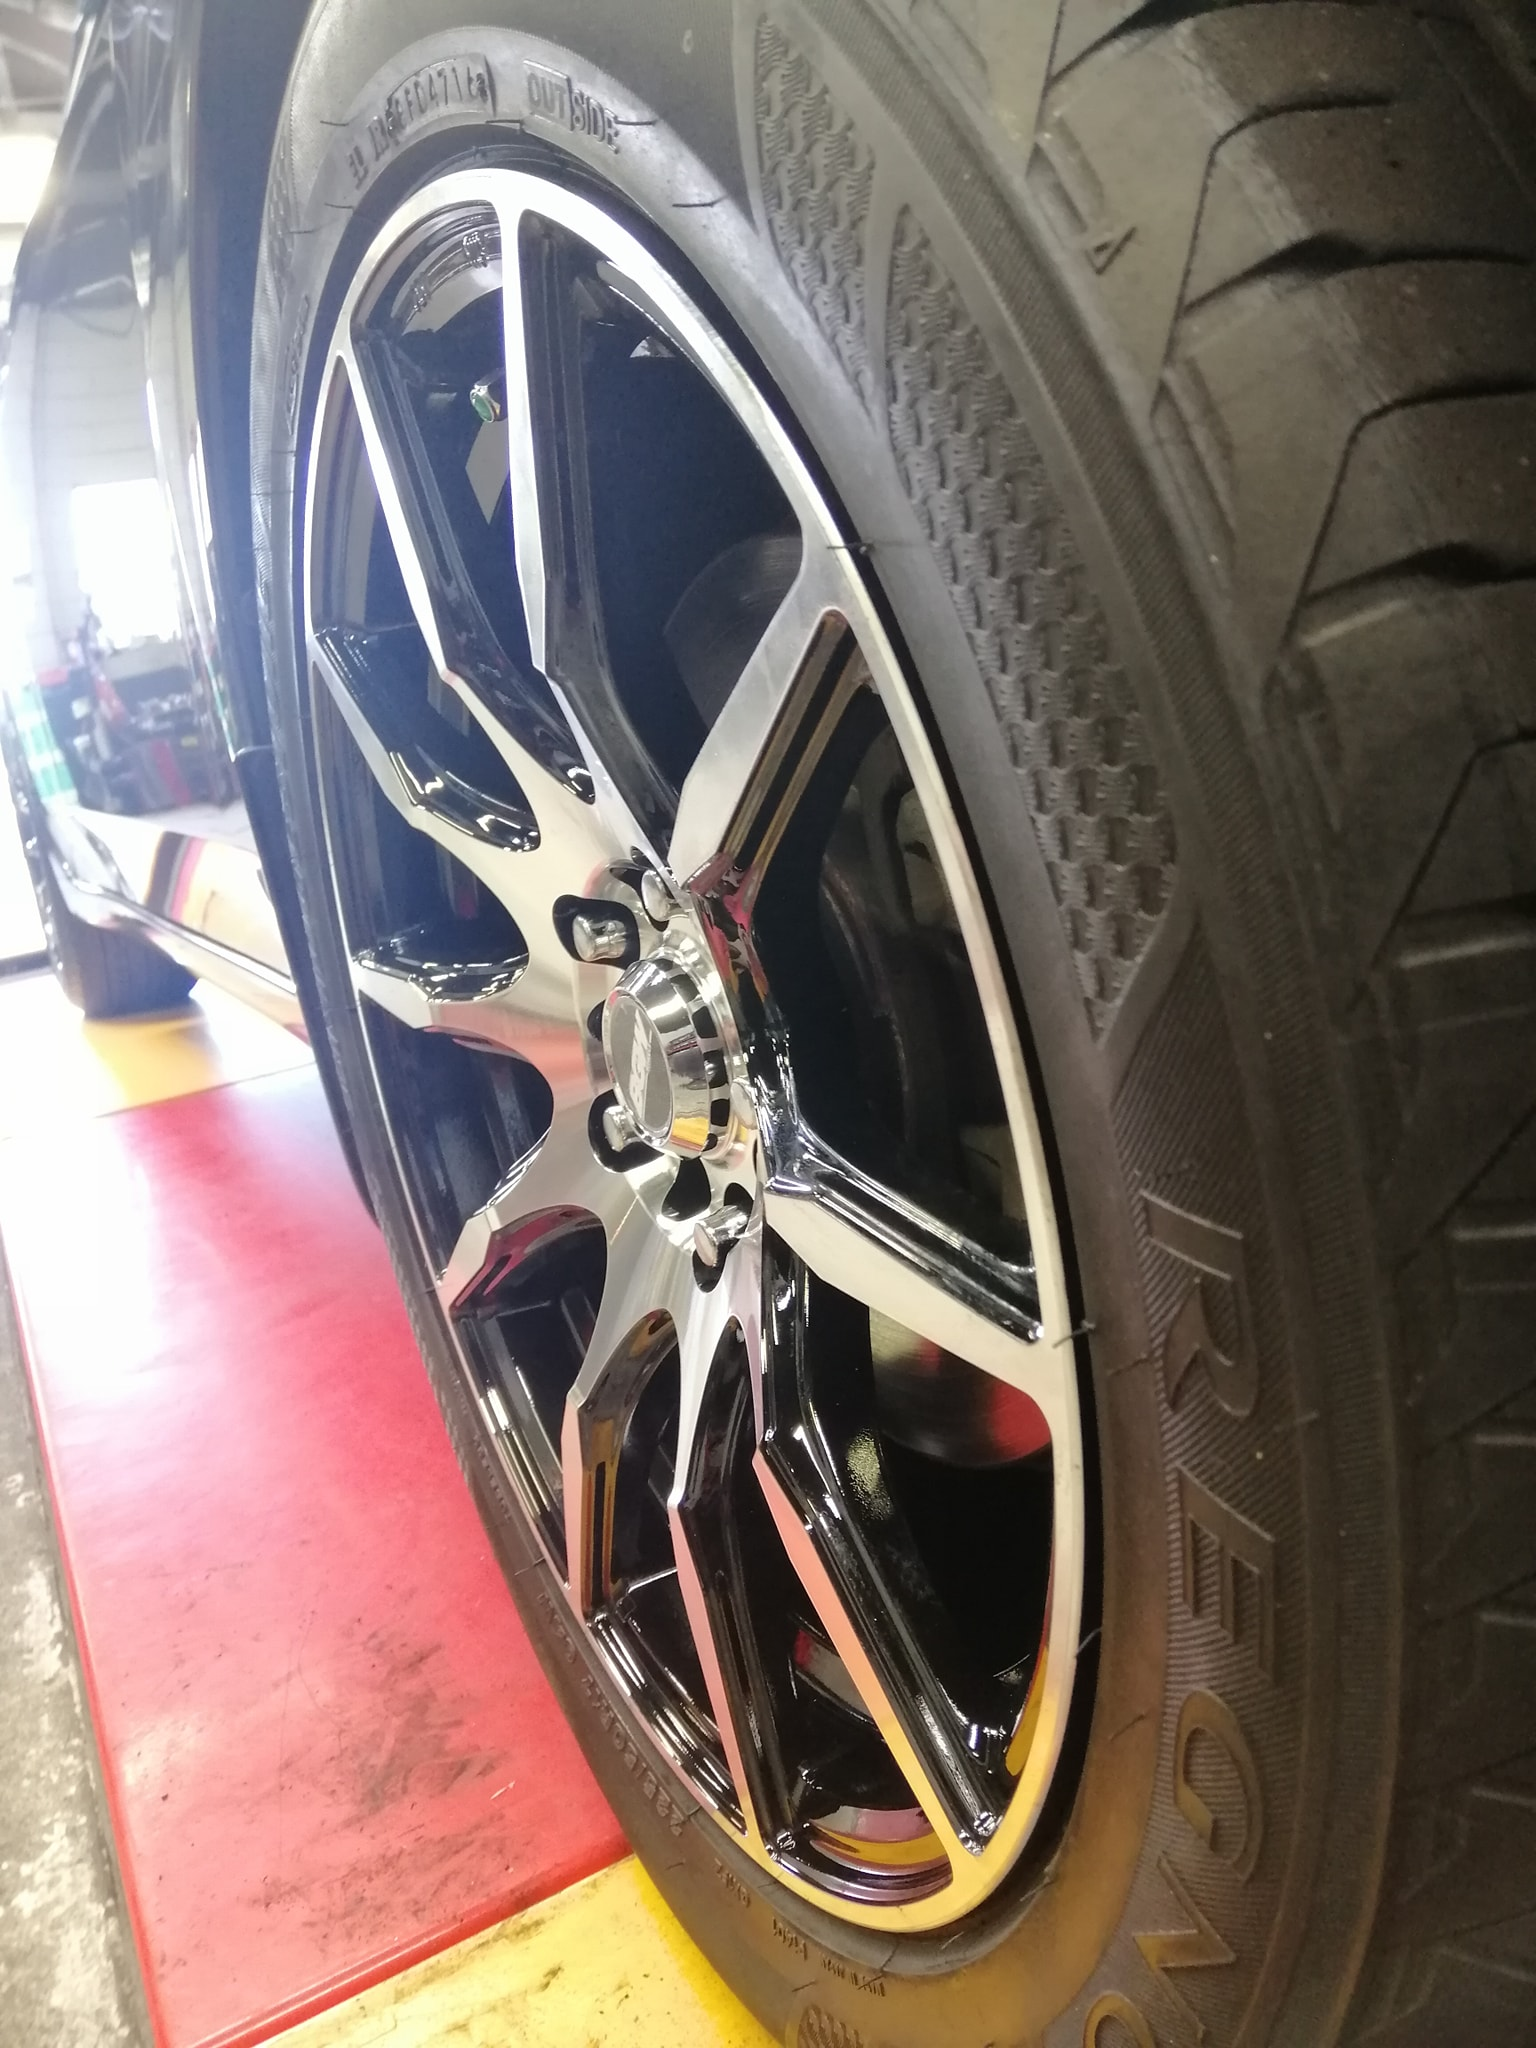 Free Tyre/Vehicle Inspection Tyre Rotation  Wheel Alignment & Balancing Nitrogen Inflation & Free Top-Ups Puncture Repairs  Finance Available WOF & Automotive Servicing Batteries (3 Year Warranty) SuperGold Card 15% OFF Oxipay Lowest Price in Town Free WINZ Quote